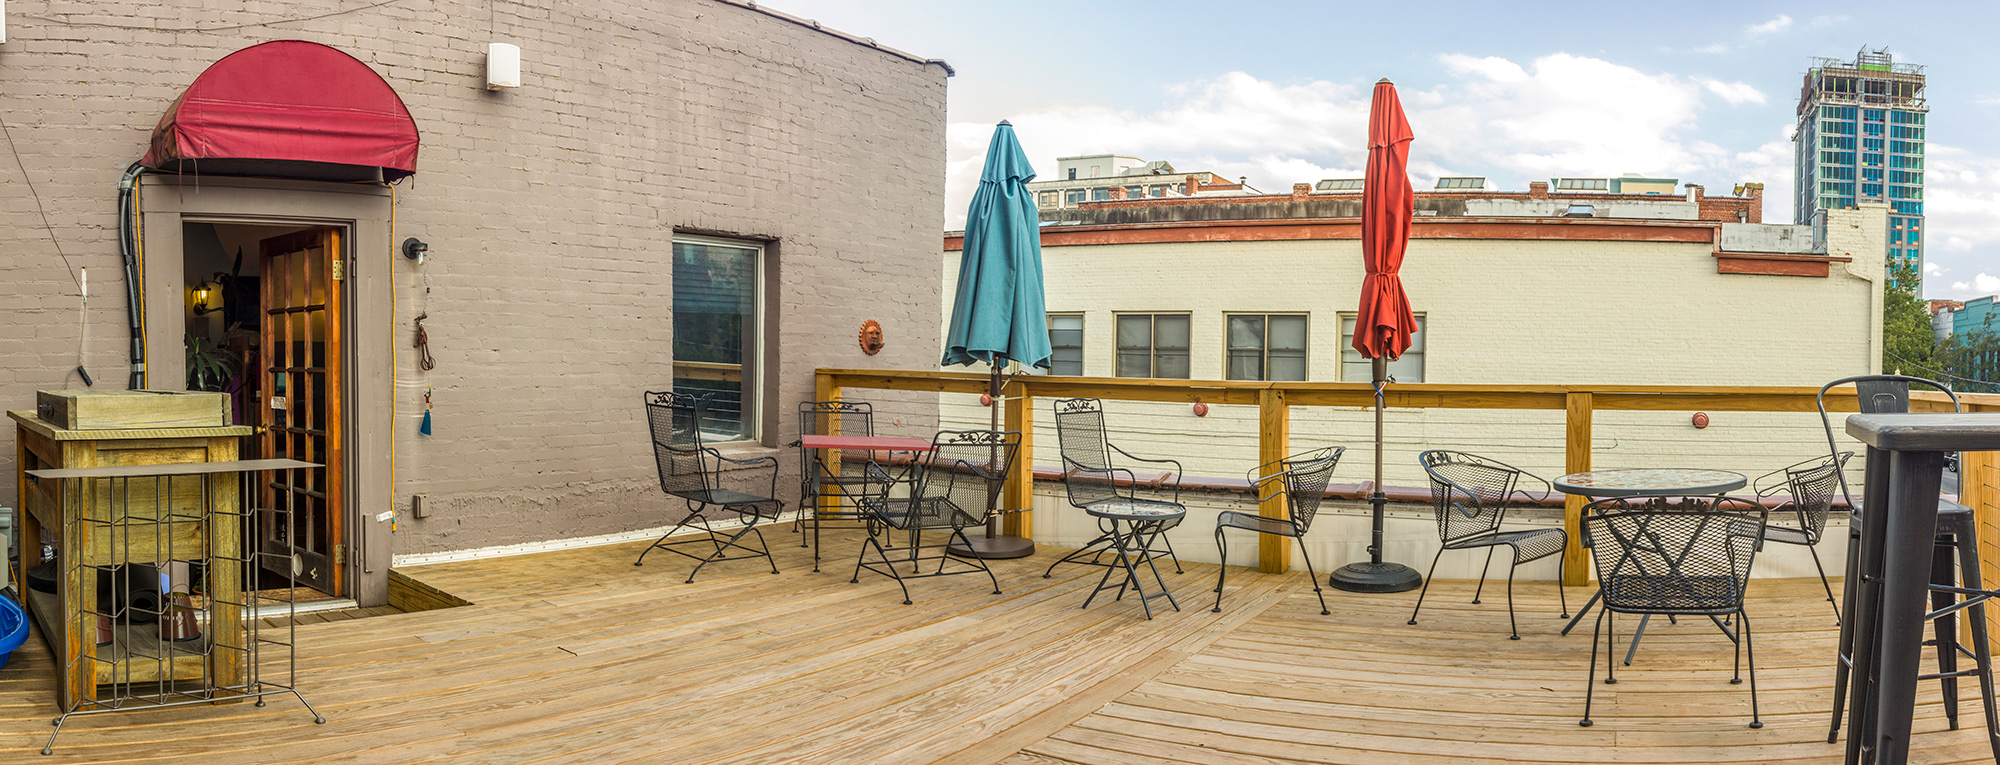 Planning an event? - Did you know you can rent the Willow's Dream rooftop patio?! It is a great space to enjoy the sites and sounds of downtown Asheville.